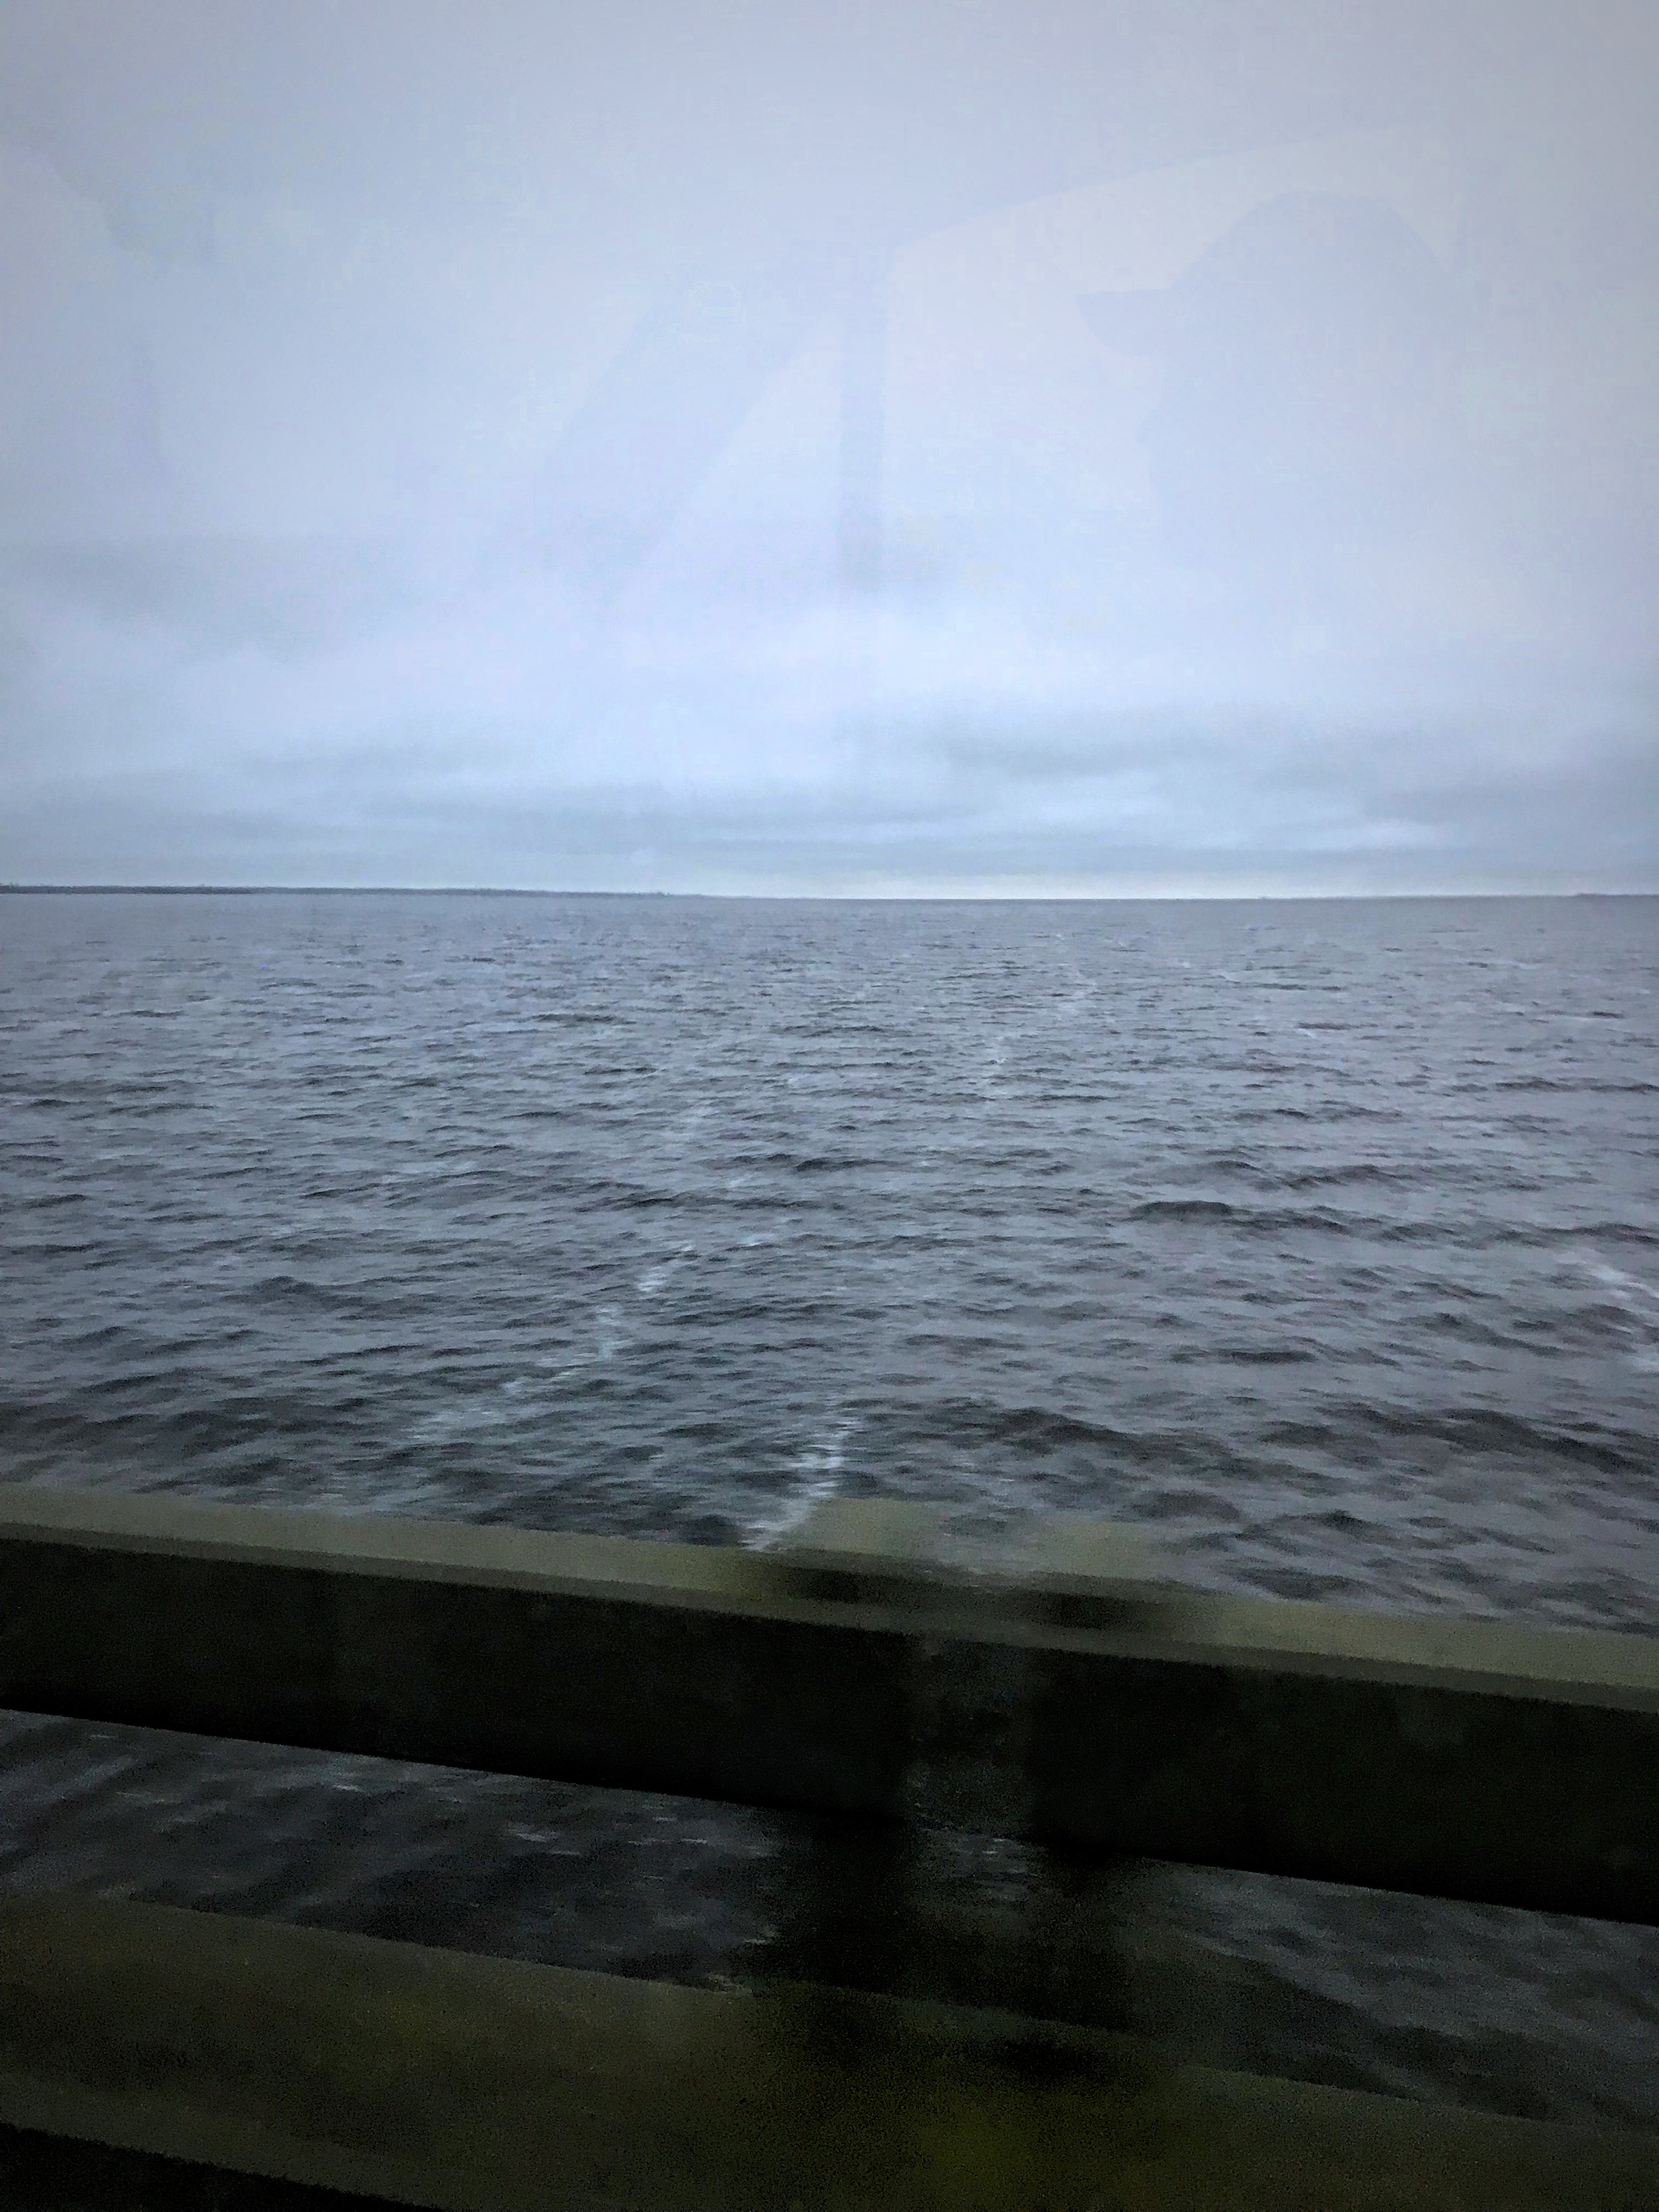 The drive along Highway 12 in the Outer Banks is amazing because you are often driving on such a narrow strip of land that there is water just outside both doors.